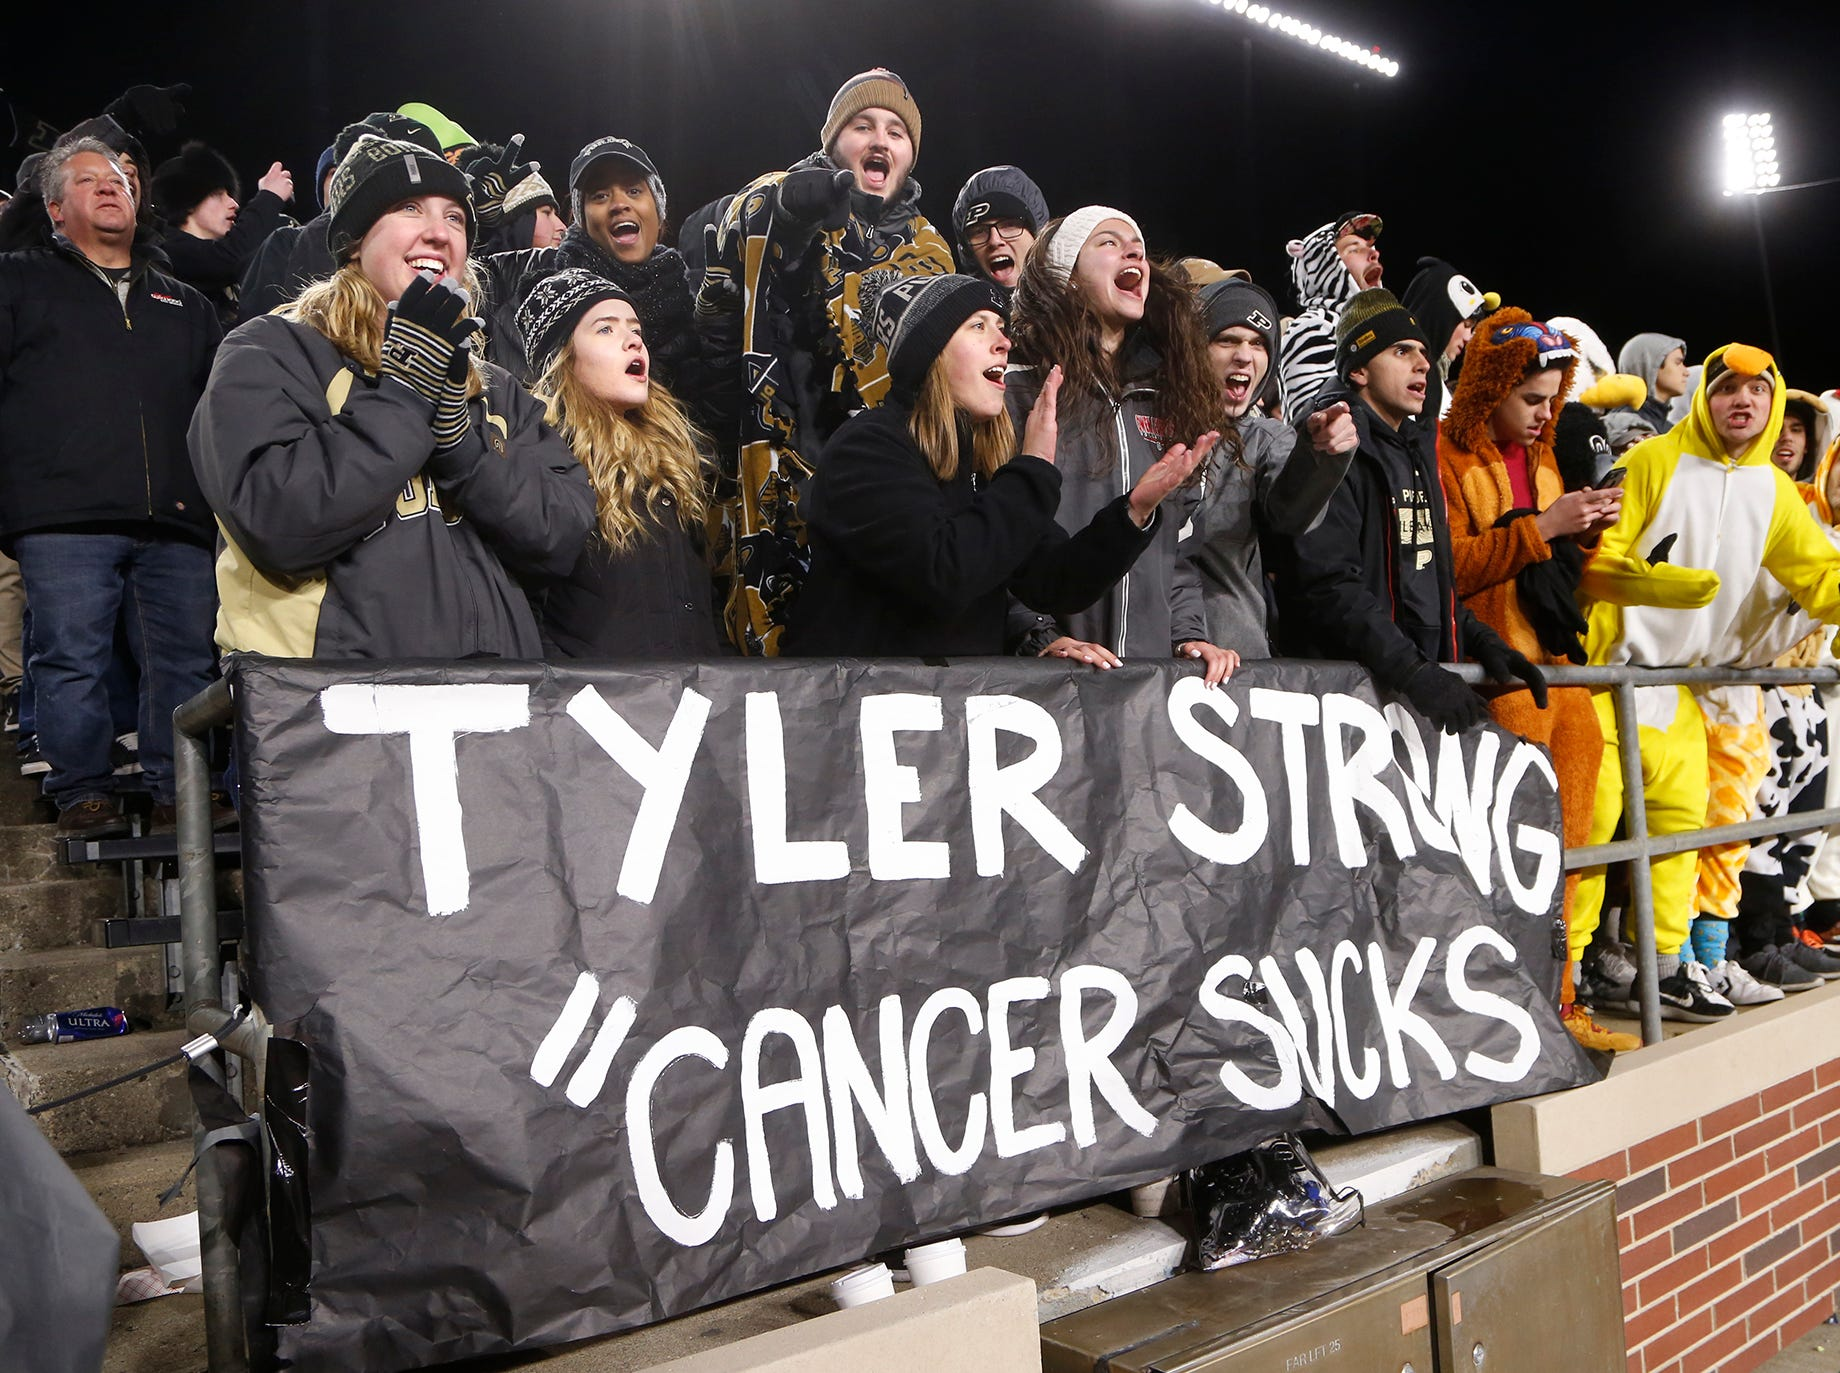 The Purdue faithful show their support for Tyler Trent as the Boilermakers pull away from Ohio State in the fourth quarter Saturday, October 20, 2018, at Ross-Ade Stadium. Trent, a Purdue student, is battling a rare form of bone cancer. Purdue upset the No. 2 ranked Buckeyes 49-20.